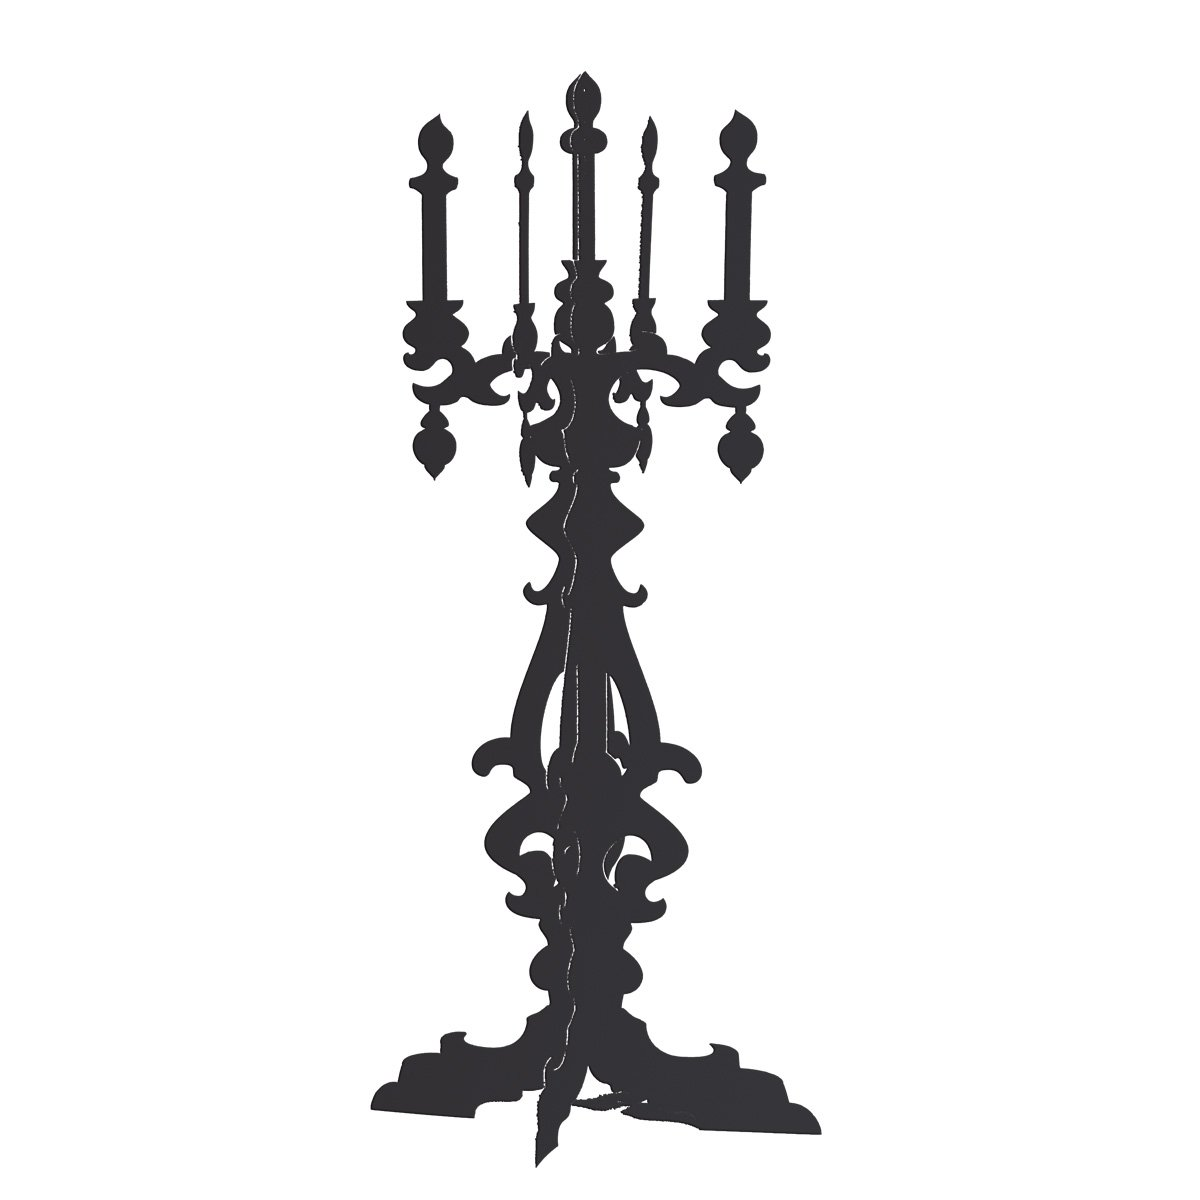 Black Candelabra Cardboard Standup Kit - 5 feet 5 inches high x 29 inches wide